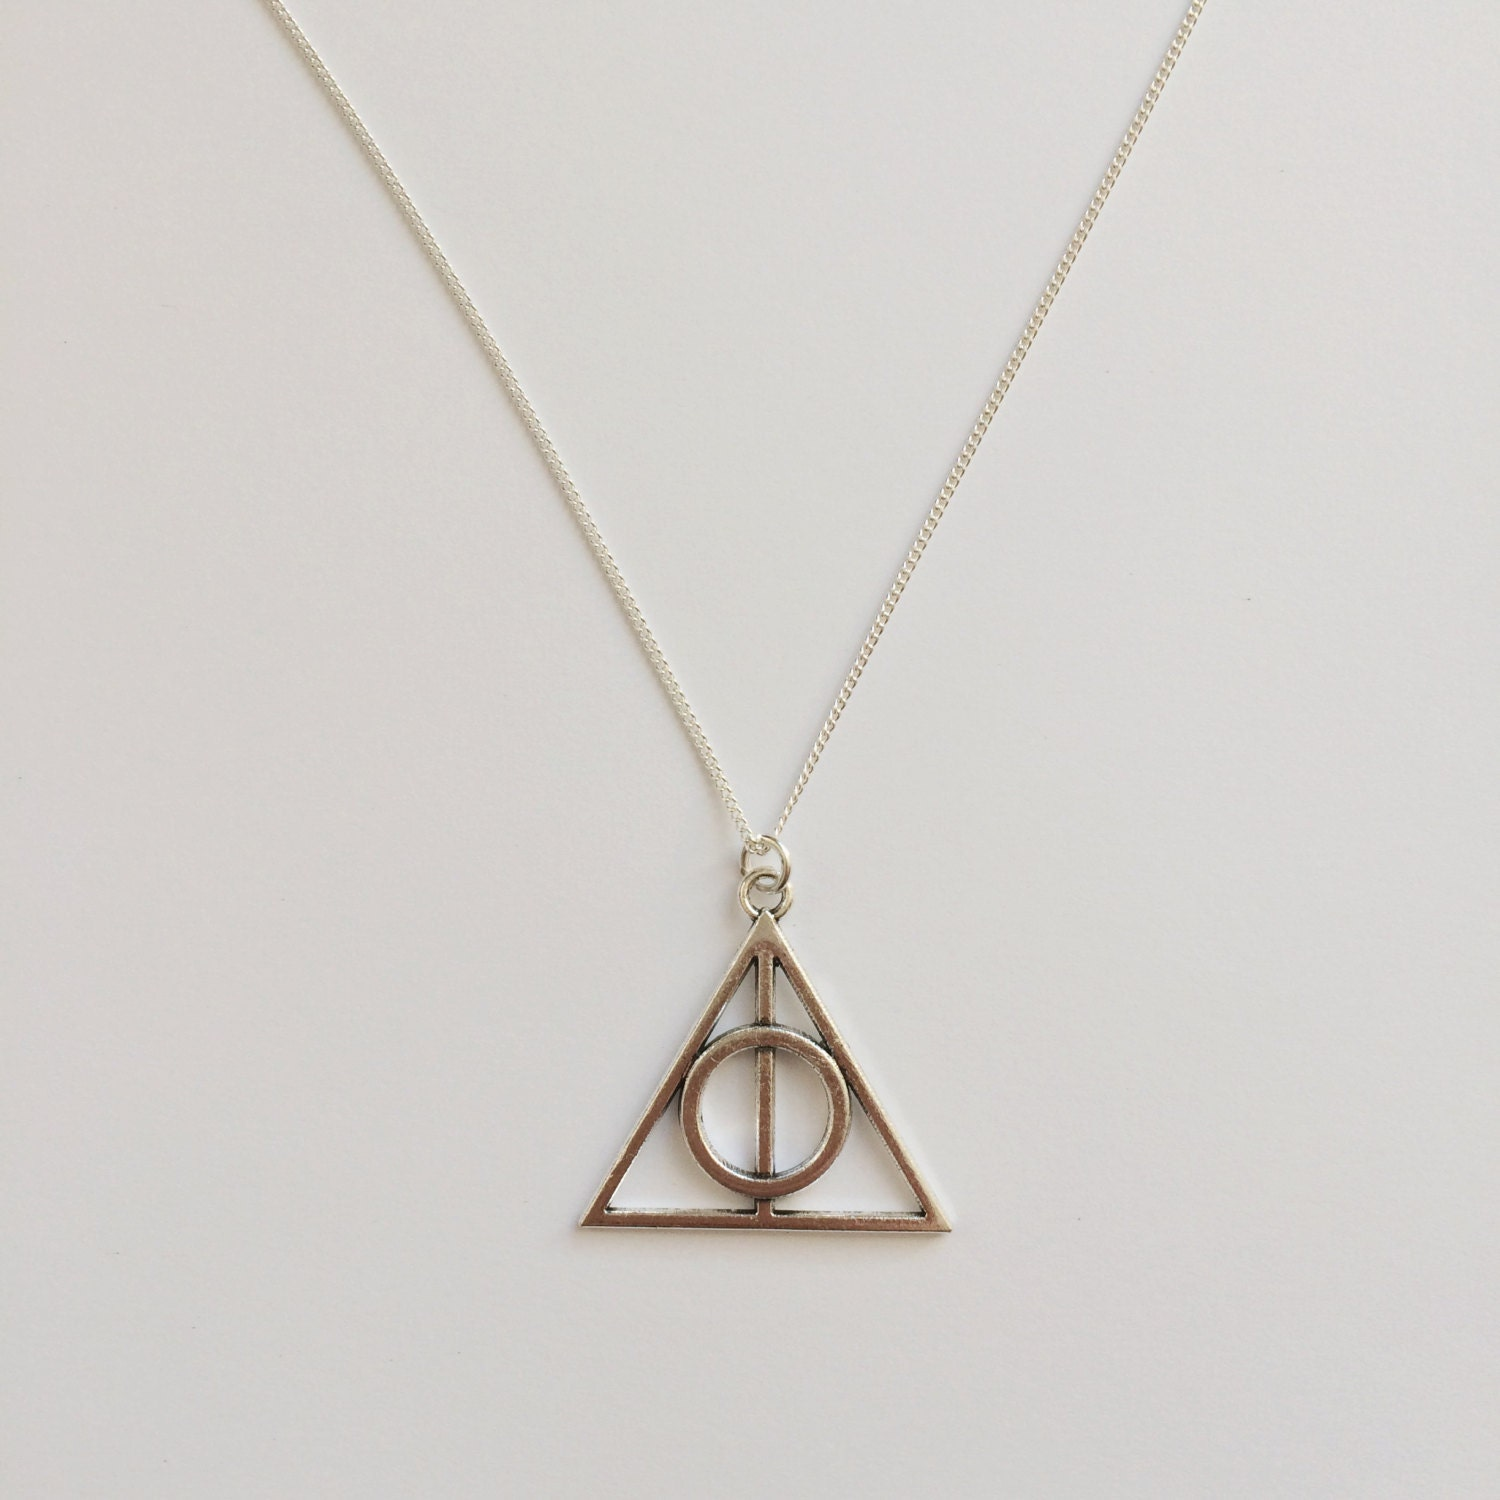 harry potter inspired charm necklace the deathly hallows